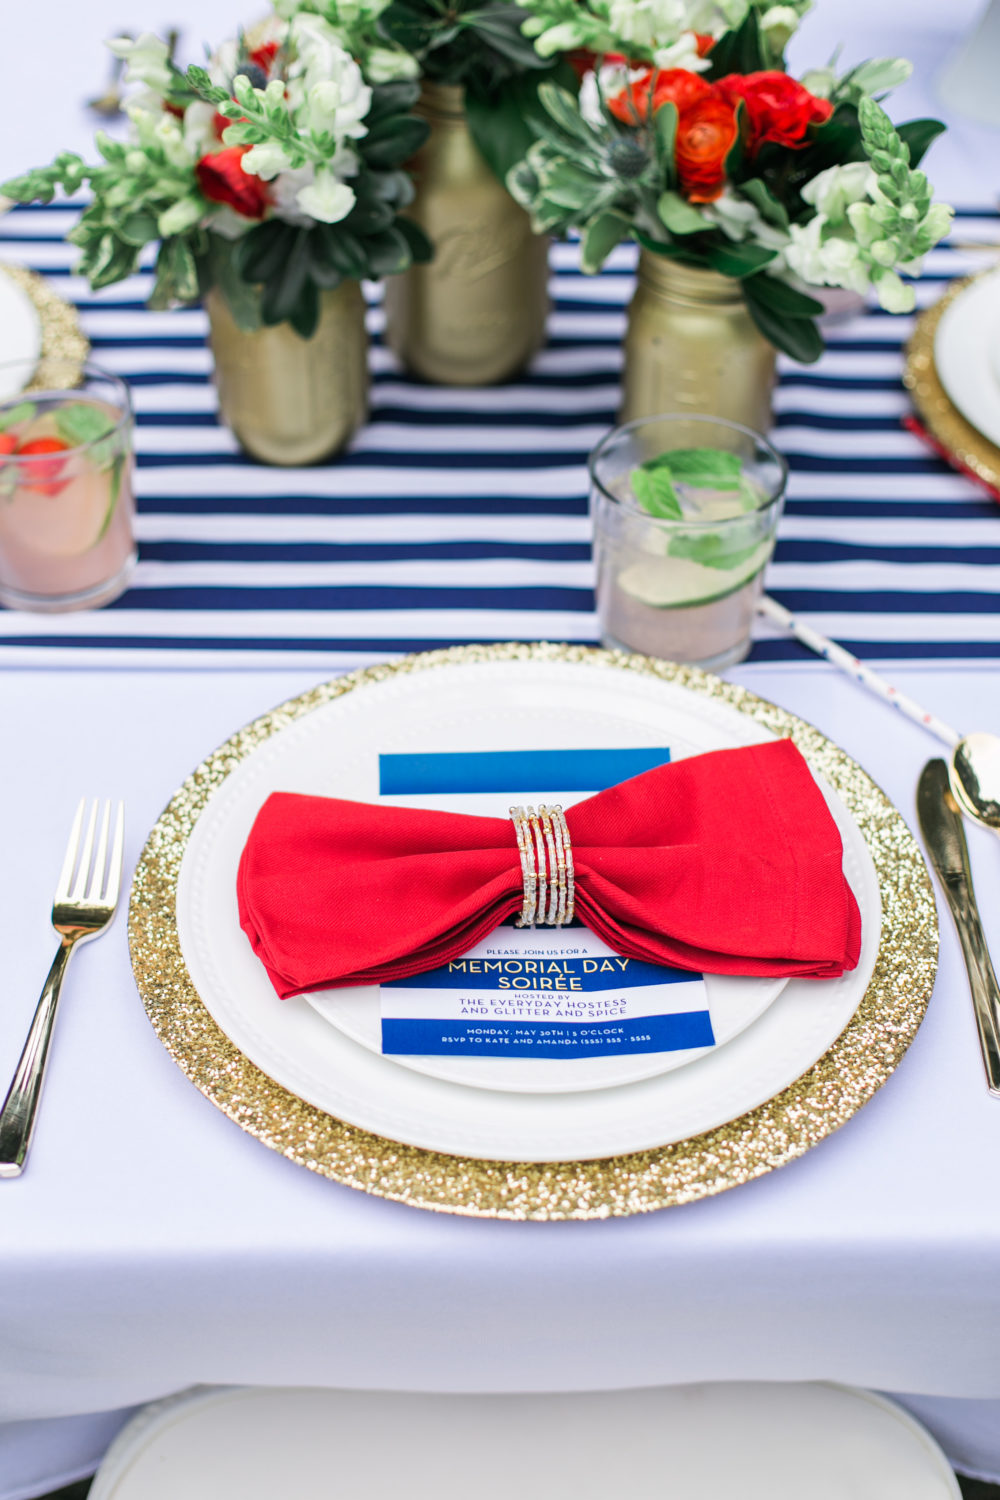 Memorial Day Party Ideas MDW Table, Red White and Blue, Memorial Day Party Theme, Gold glitter charger, gold flatware utensils, red napkin